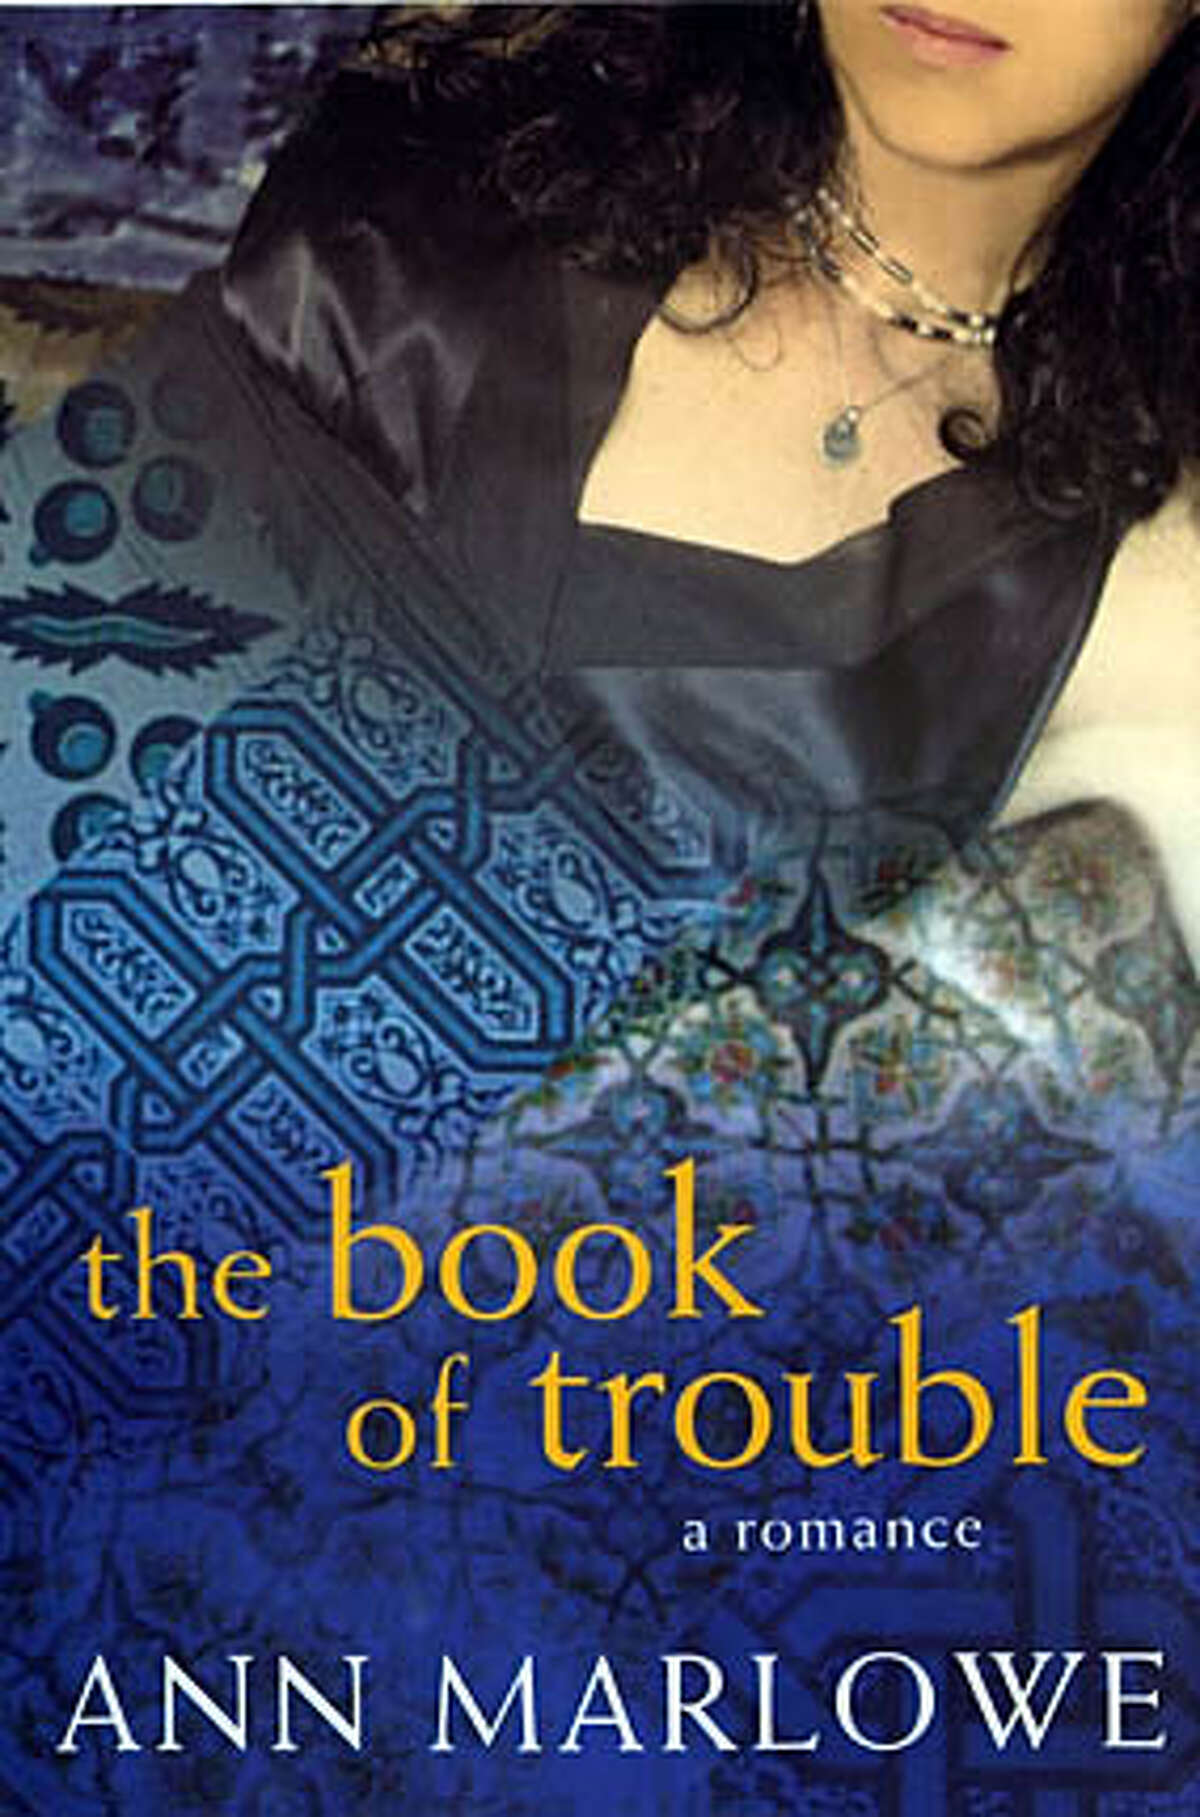 """Cover art for """"The Book of Trouble,"""" a romance by Ann Marlowe. Jacket design by Jennifer Jackman."""